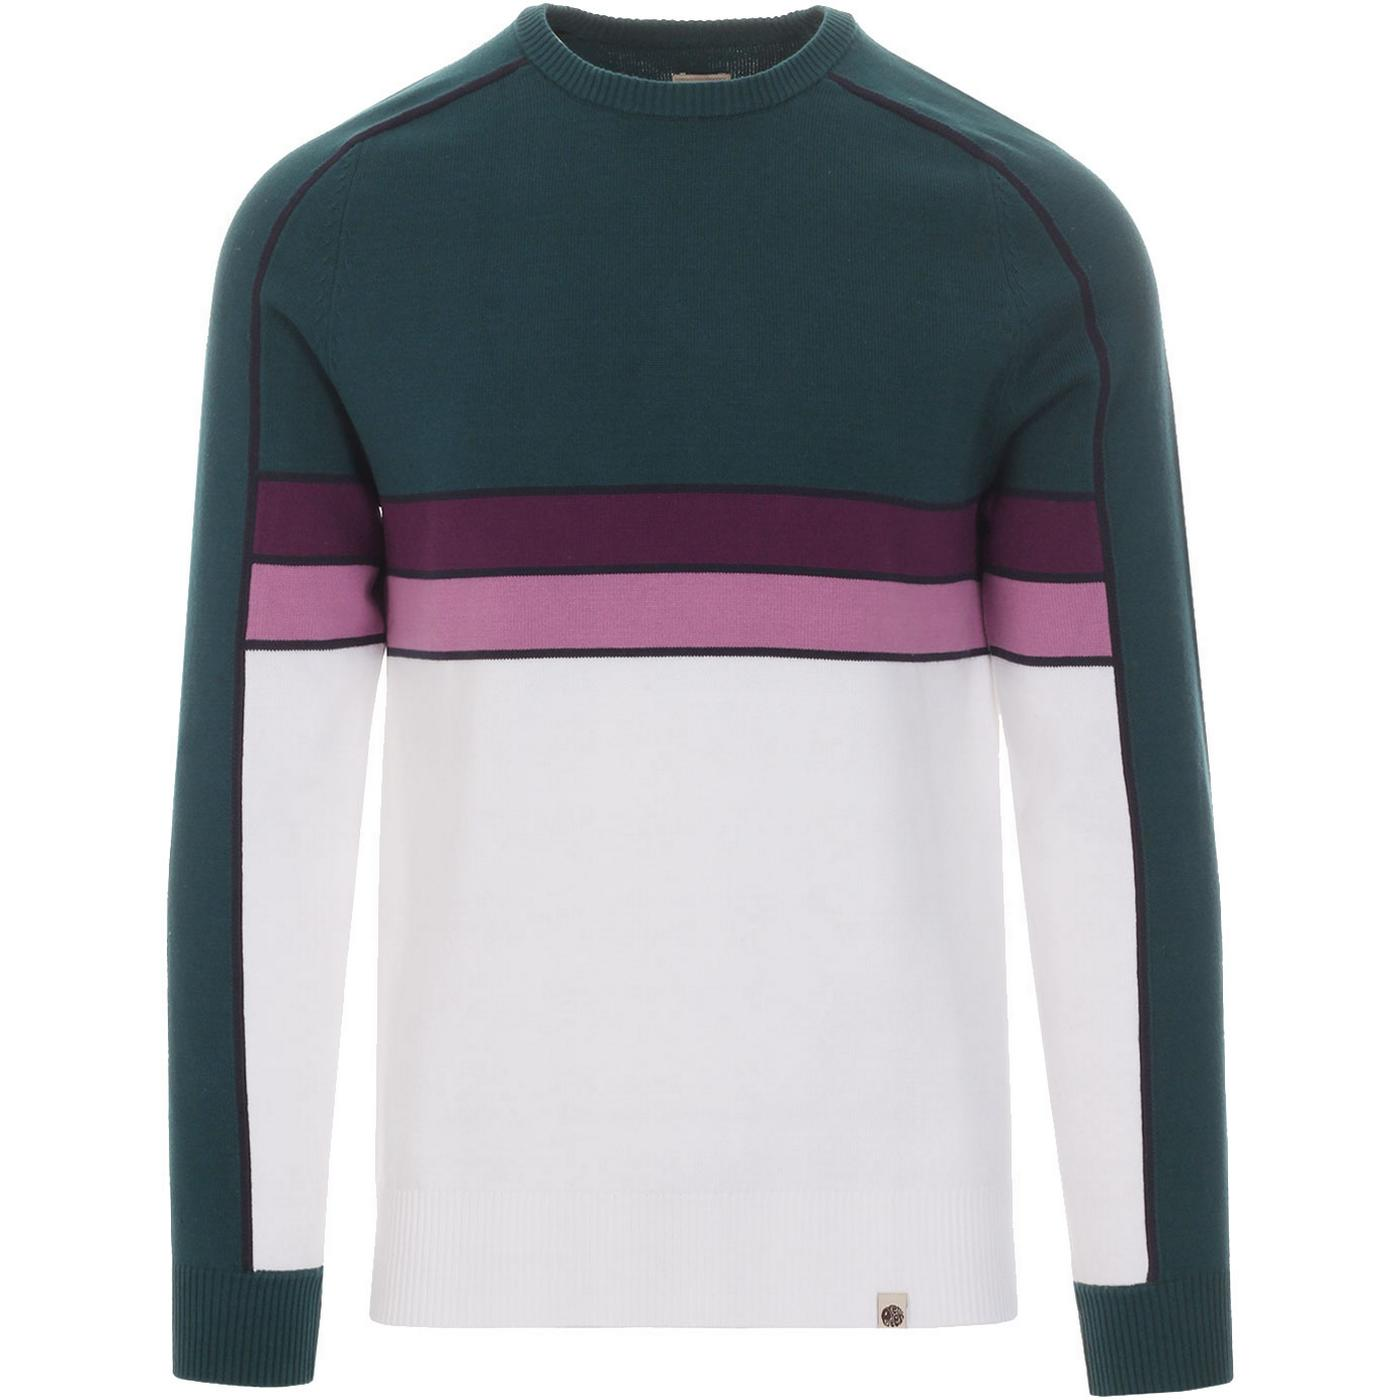 PRETTY GREEN Retro Contrast Panel Knitted Jumper G